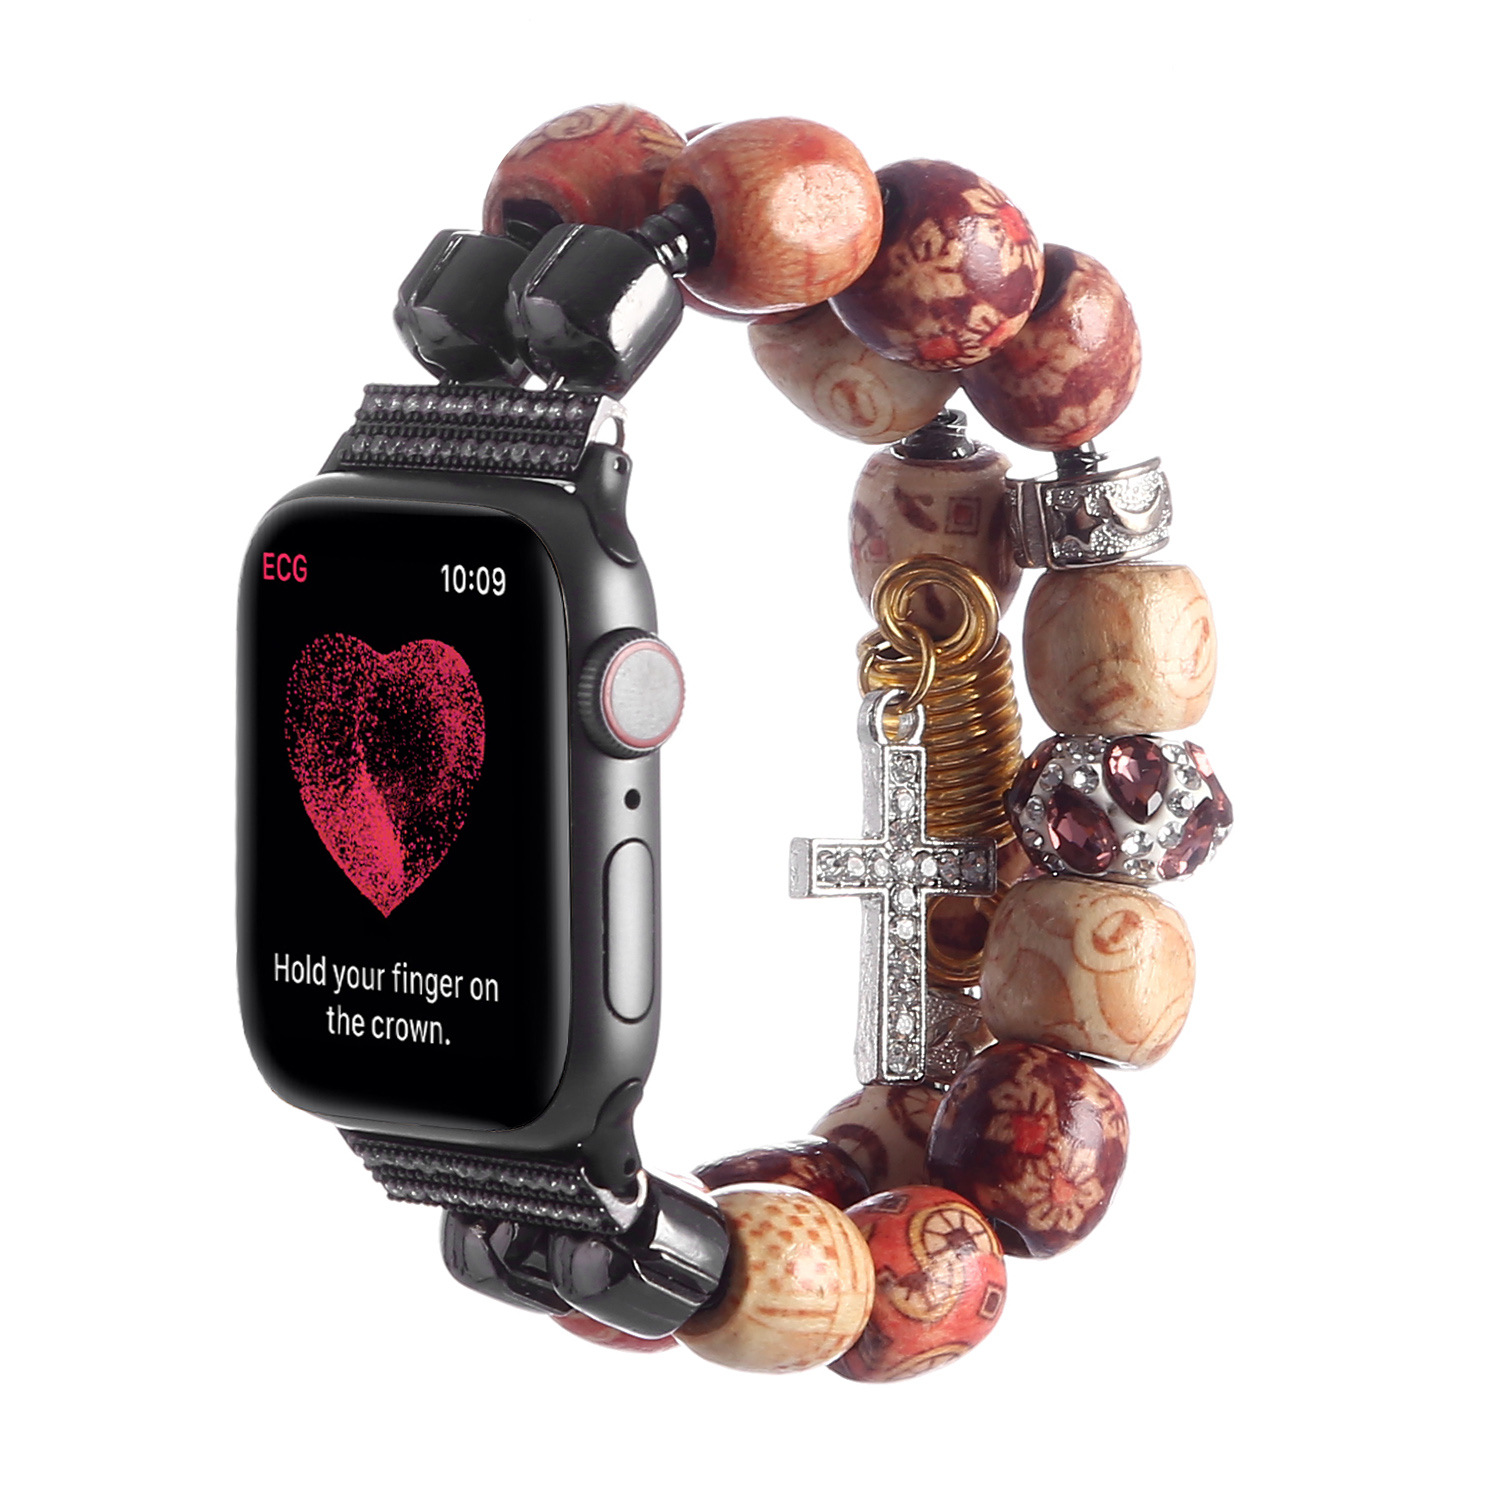 Suitable For Apple Watch APPLE Watch Three Four Generations Handmade DTY Wooden Bead And Adjust Accessories Watch Strap